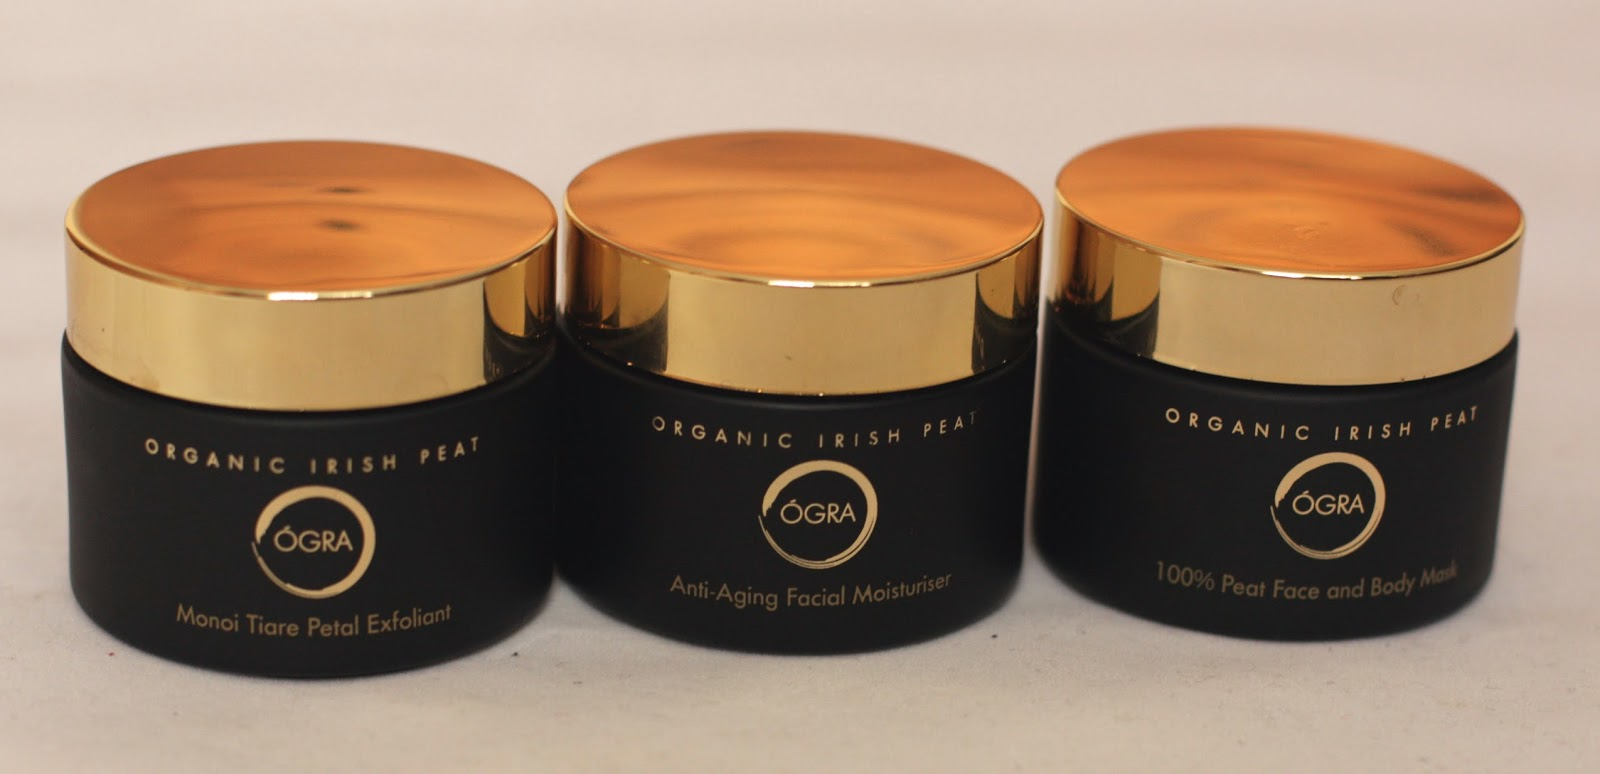 OGRA face and body scrub, moisturiser and mask